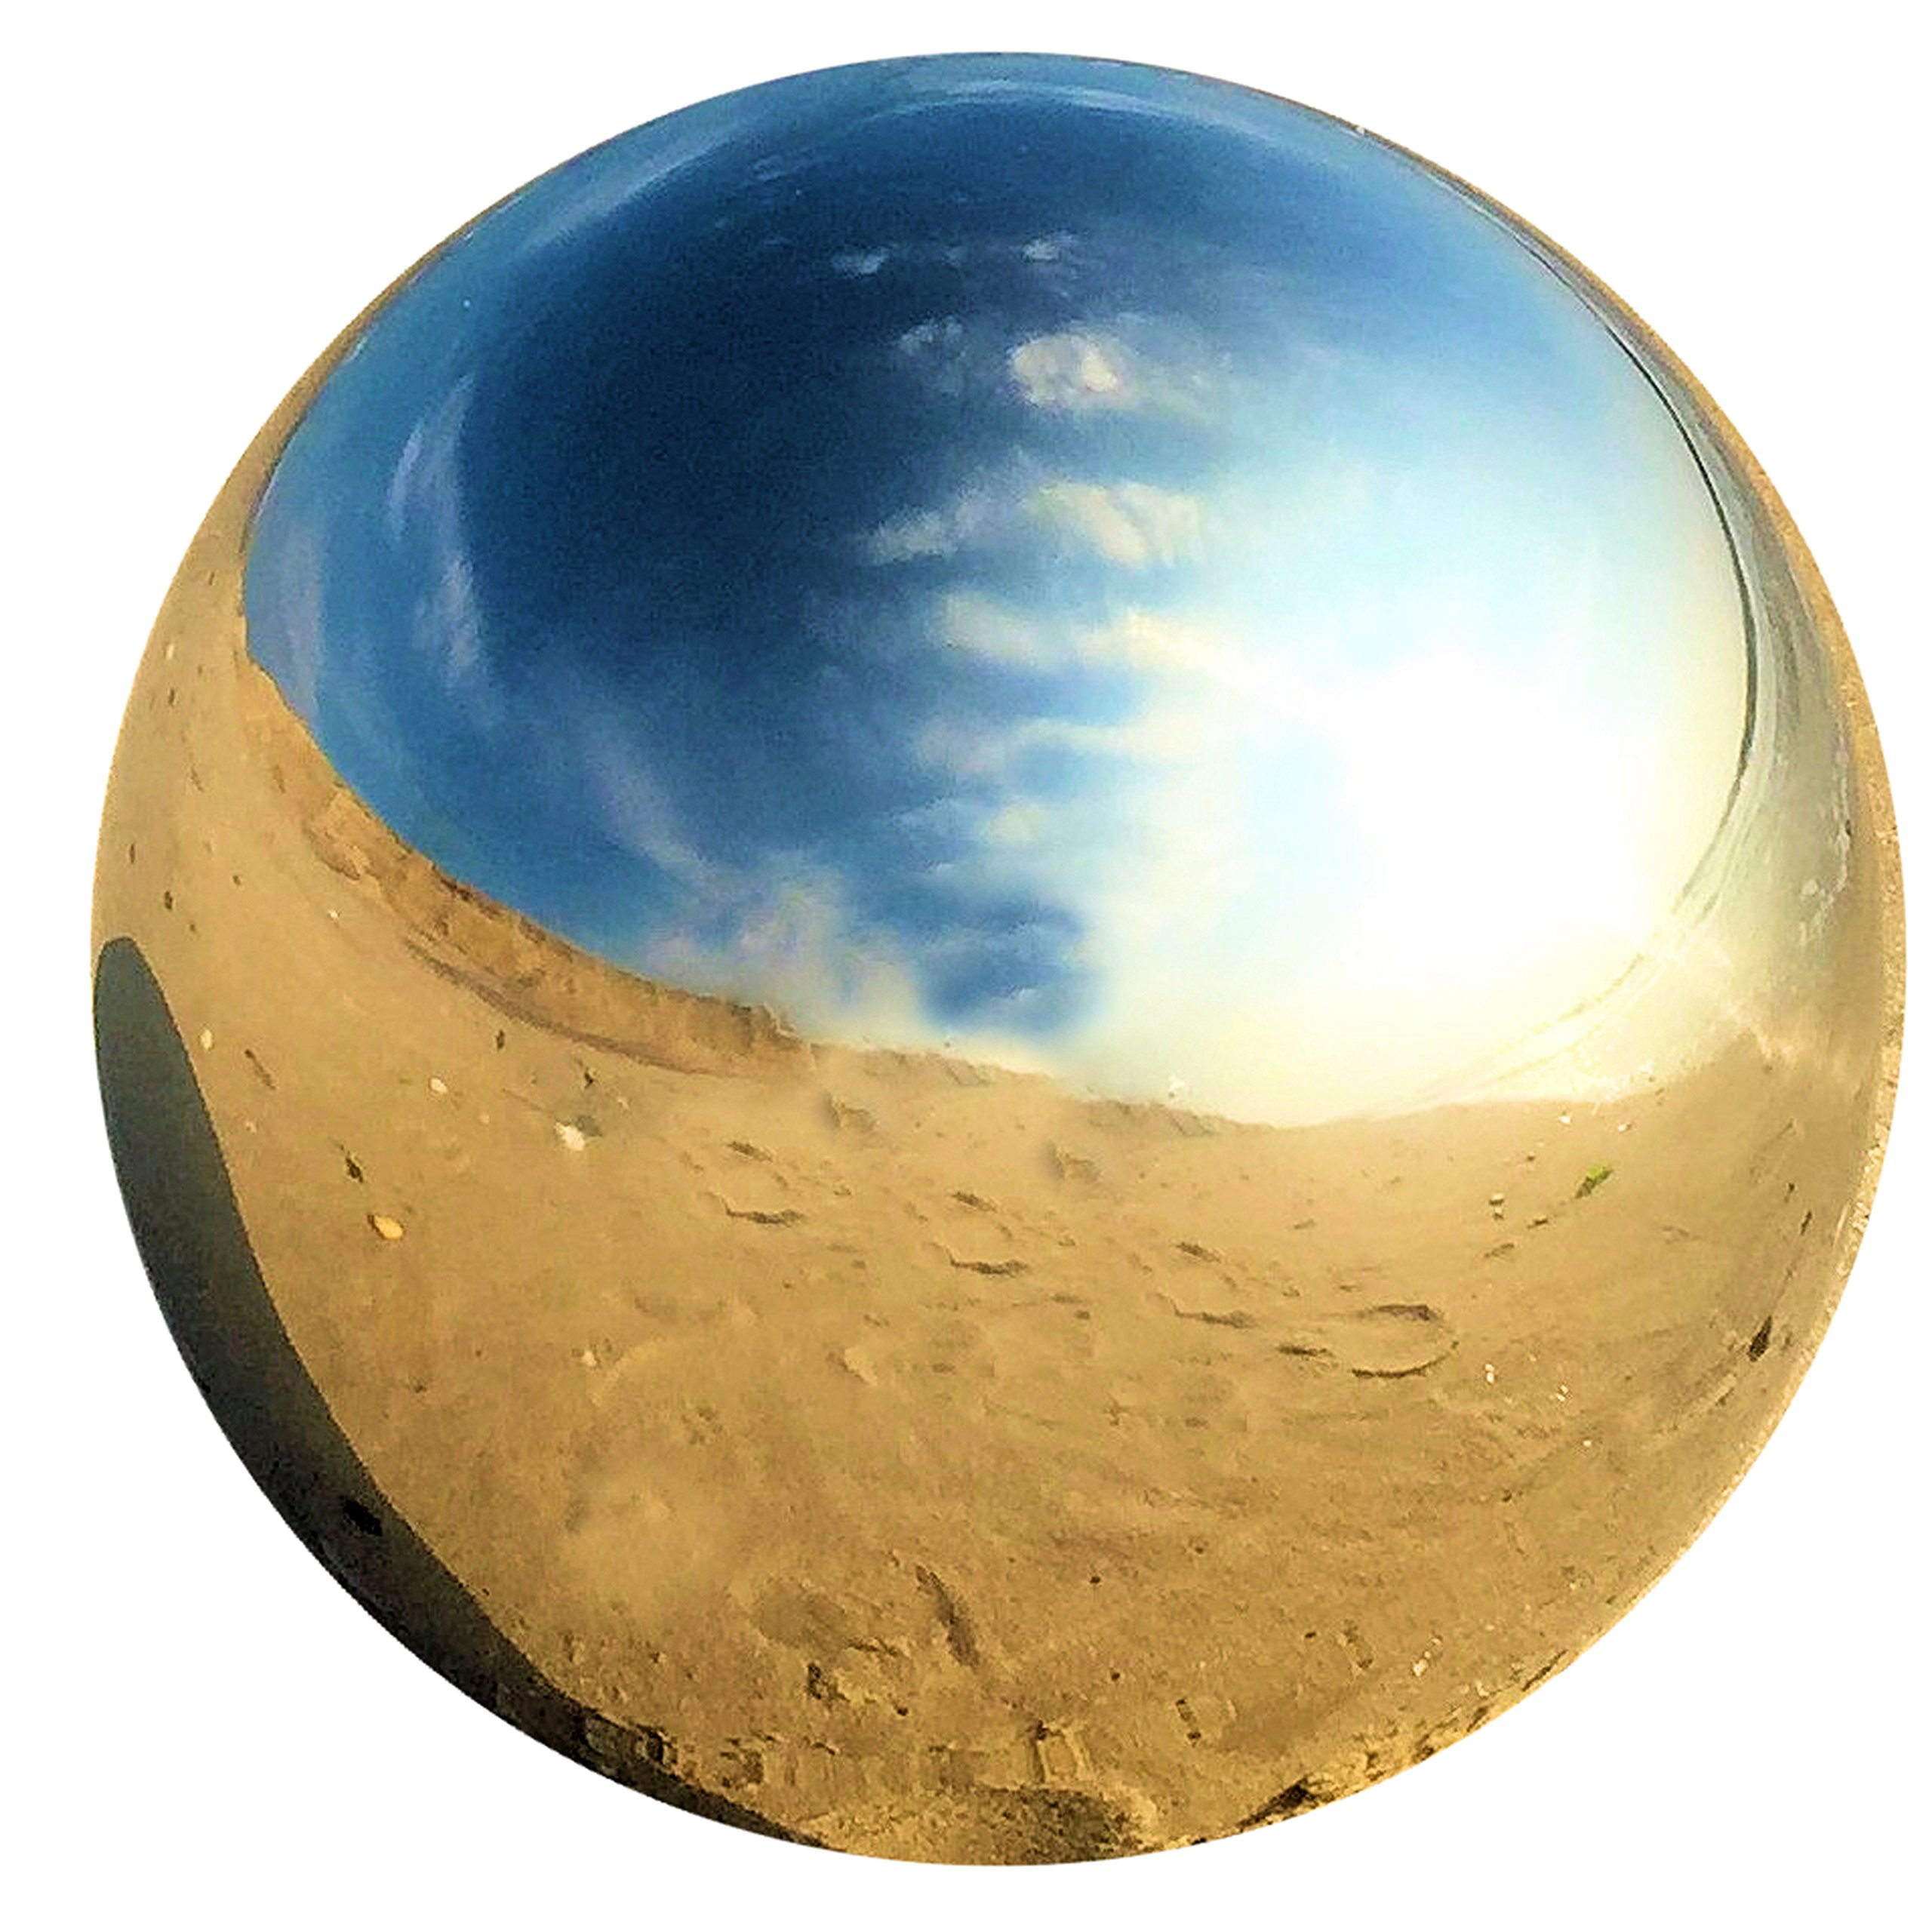 Whole House Worlds The Crosby Street Stainless Steel Gazing Ball for Homes and Gardens, 7'' Diameter, Mirror Globe, By